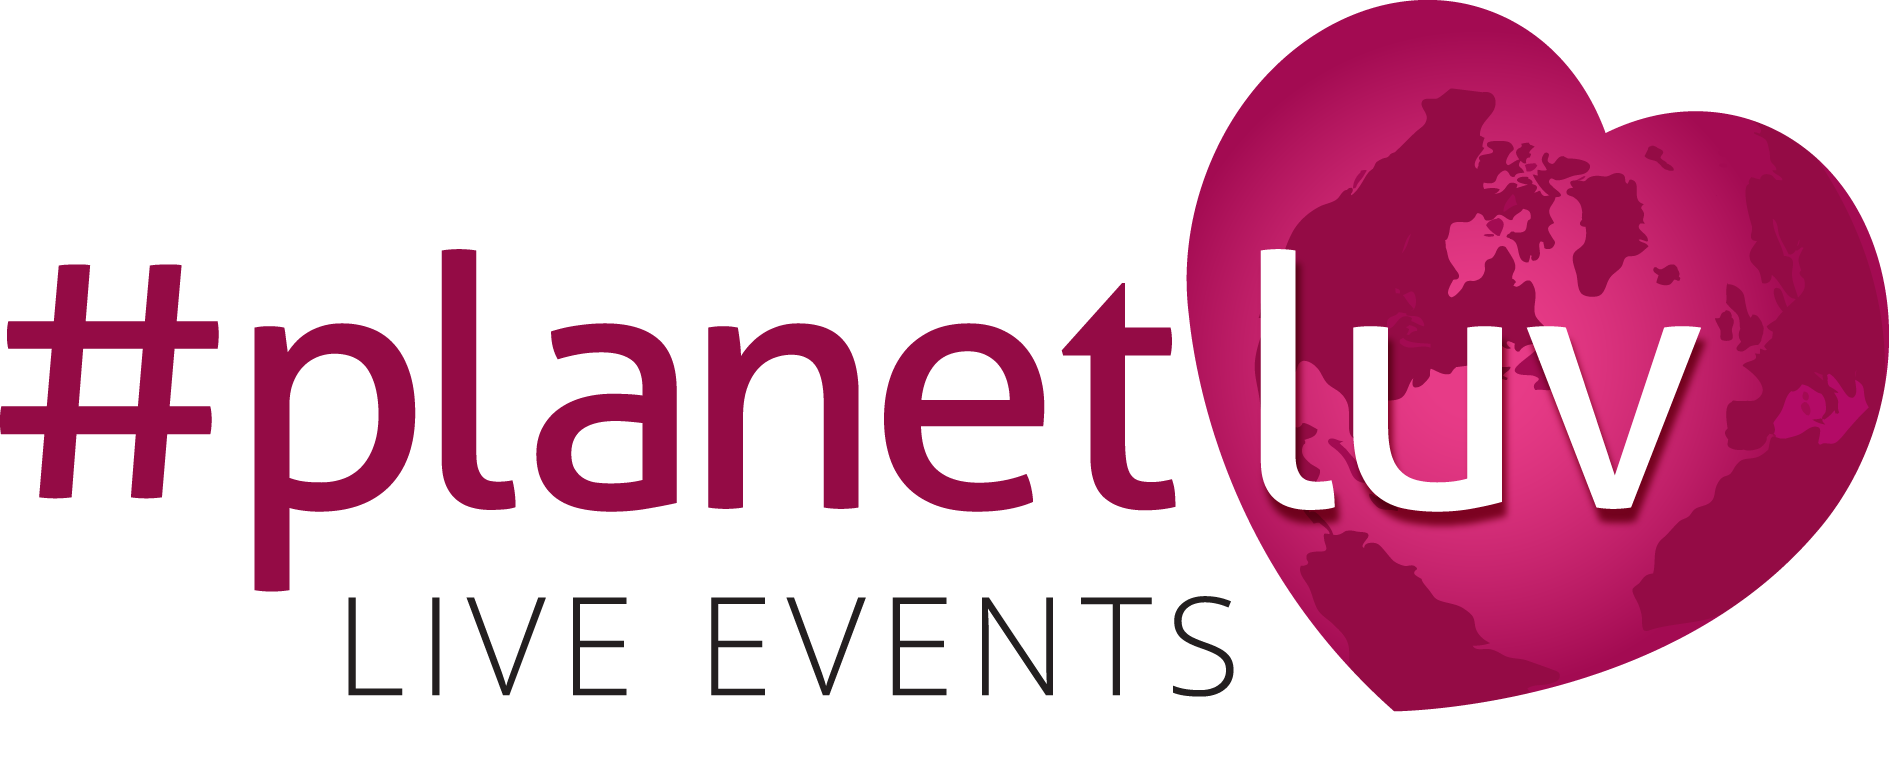 Planet Luv Live Events